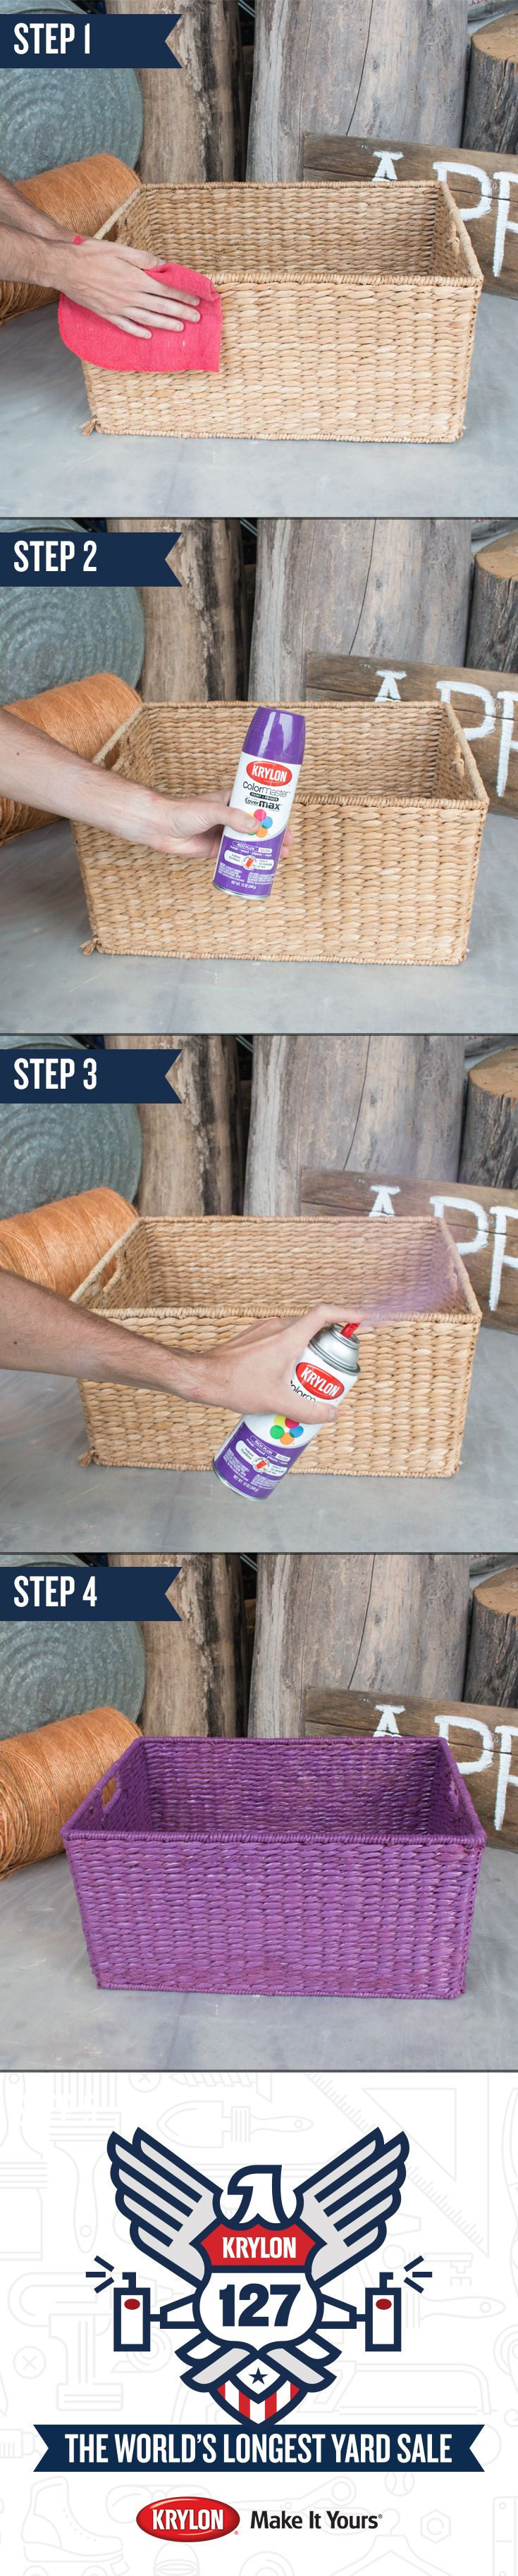 Whip your home into shape when you turn ordinary objects into colorful and functional decorations. Use Krylon ColorMaster Paint + Primer in Rich Plum to get this look. See how with this step-by-step guide: 1) Clean the surface with a damp rag. 2) Shake your can of spray paint vigorously for 2 minutes. 3) Spray light, even coats of paint. 4) You're ready to enjoy! Let this #Krylon127YardSale makeover inspire your next DIY project.